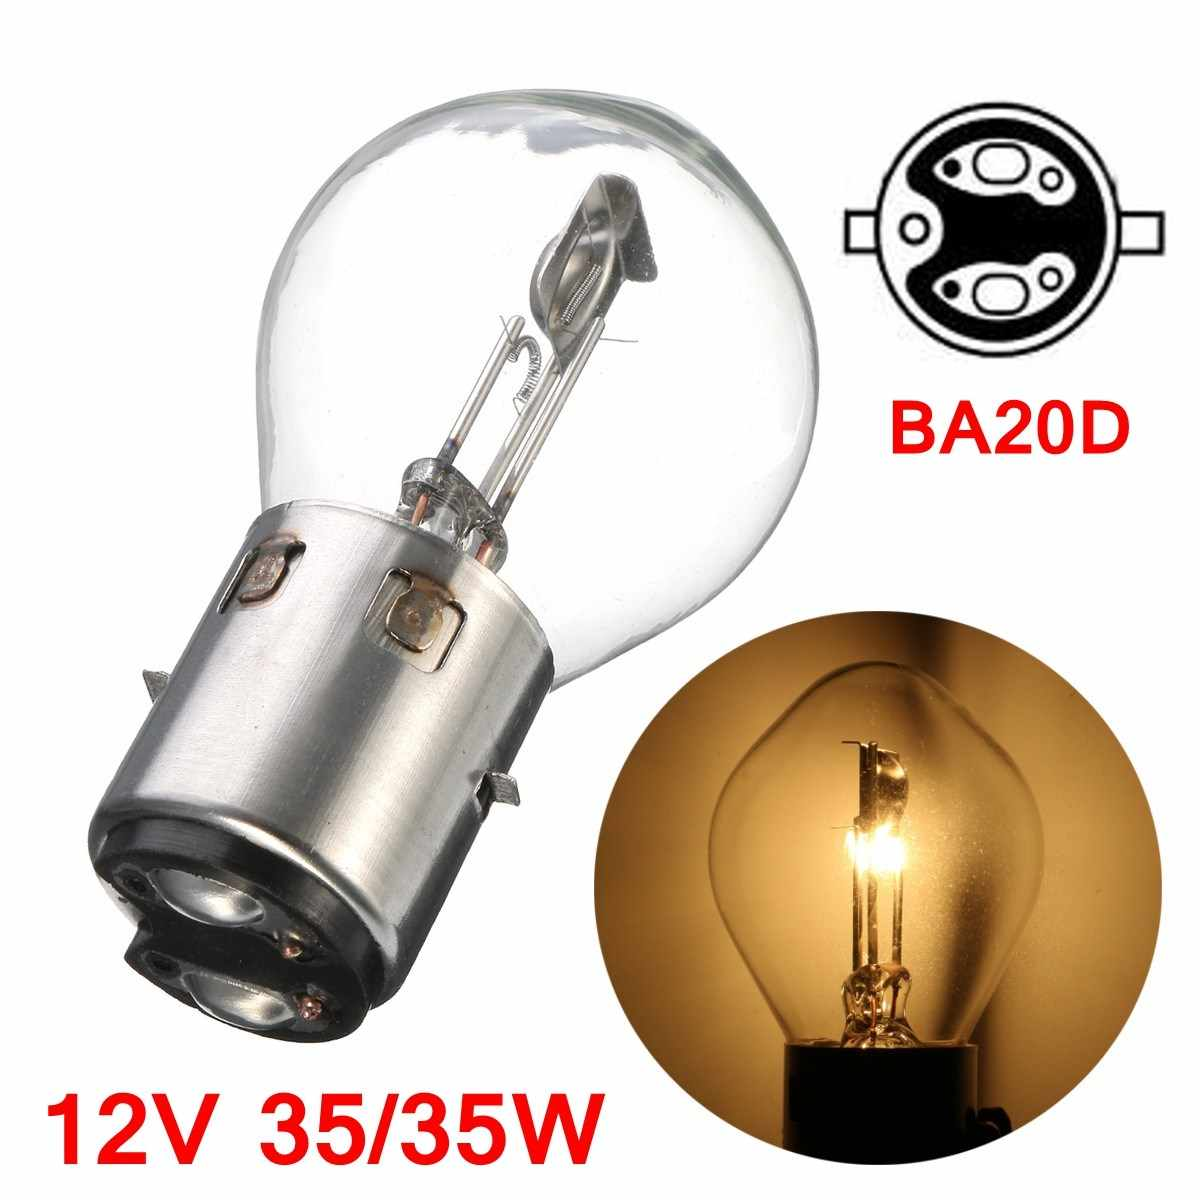 BA20d Motor ATV Moped Scooter Headlight Bulb 12 v 35 35 w BA20d Hi-Low beam Quartz Logam kuning